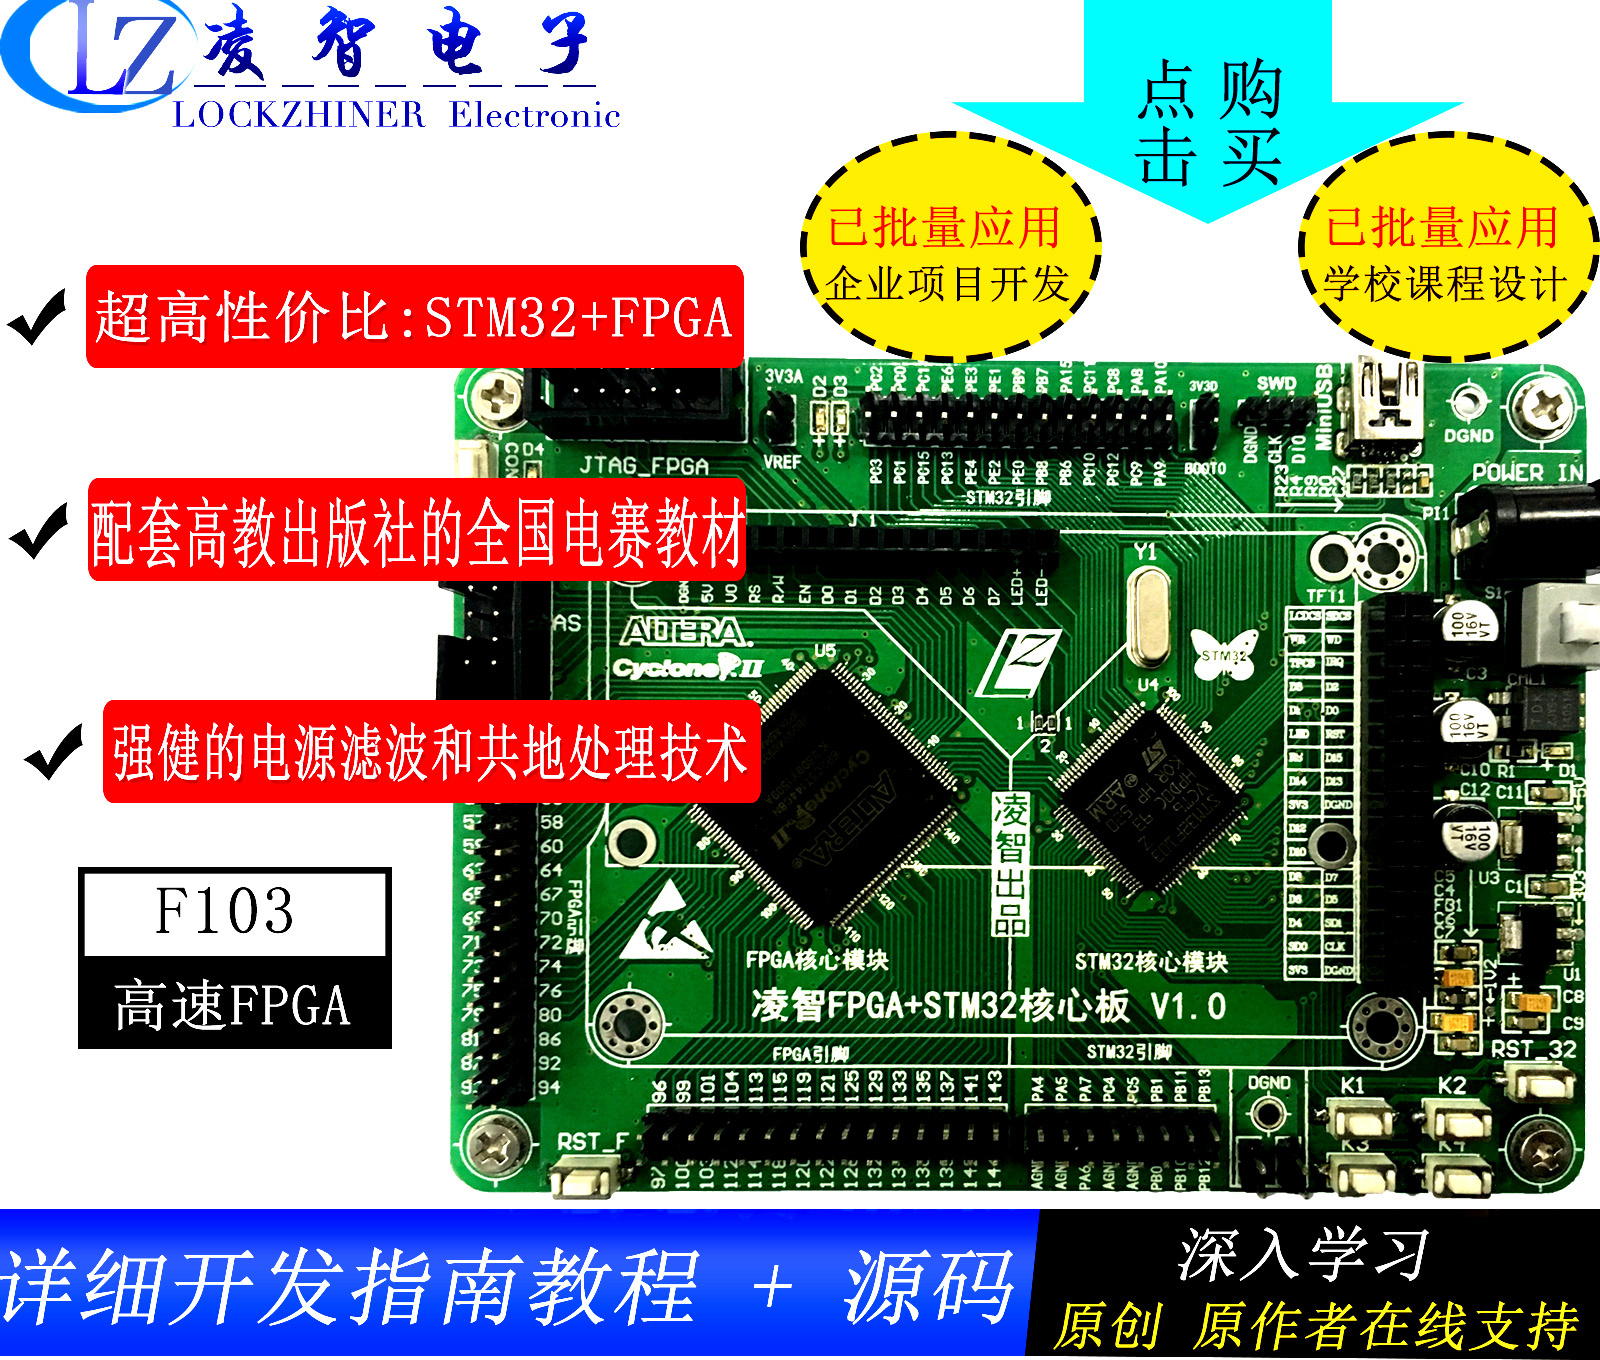 Electronic System Design: STM32 Development Board FPGA Development Board STM32F103VCT6+FPGA Core Board stm32 development board stm32f103 learning machine embedded microcontroller development board design course